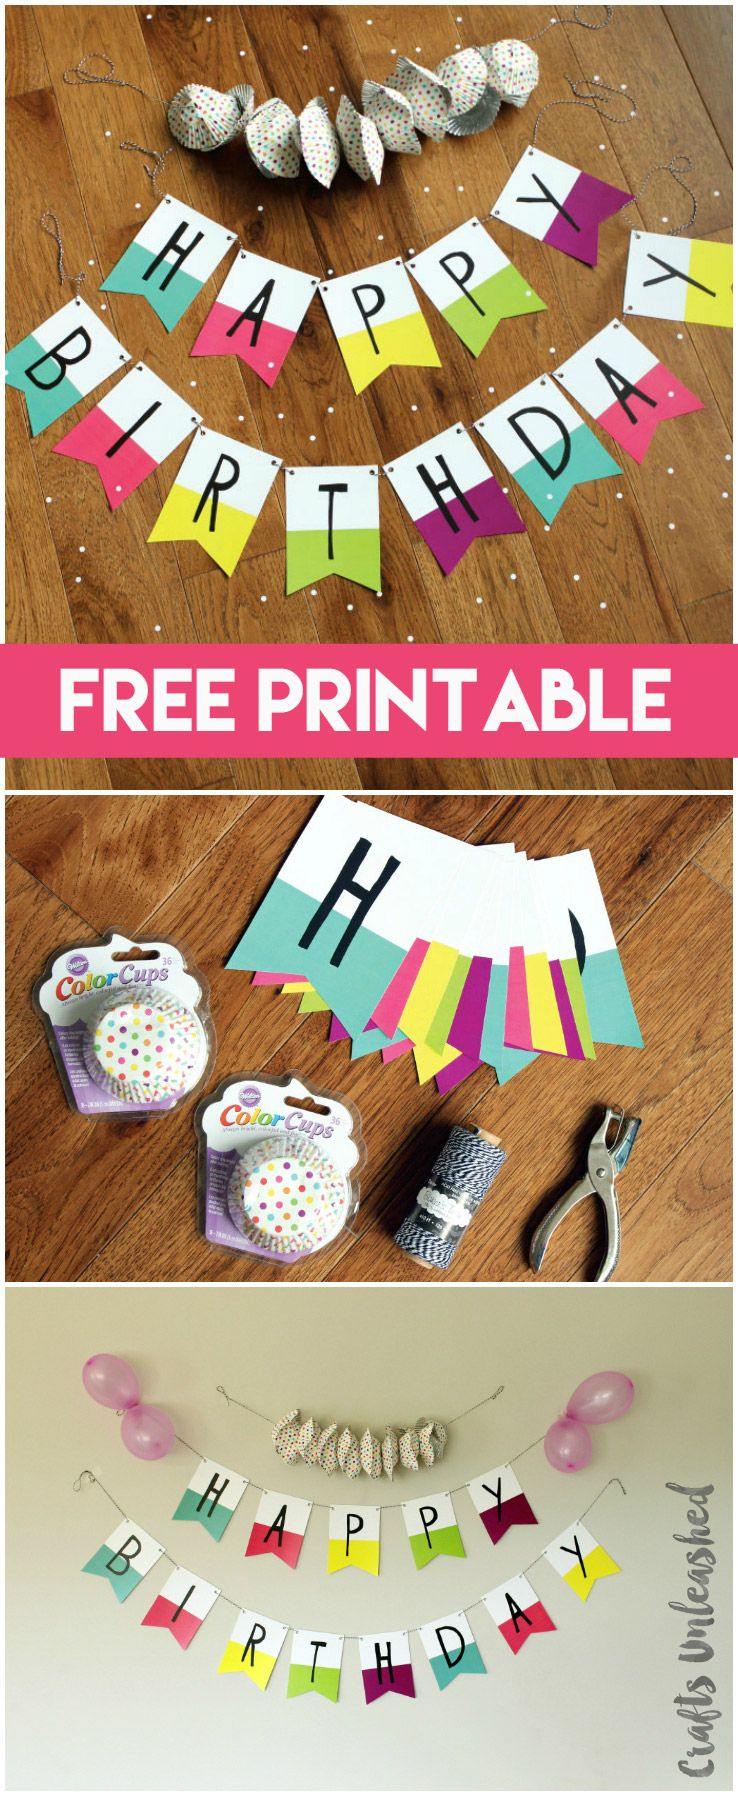 Free Printable Banner: Happy Birthday Pennants - Consumer Crafts ...